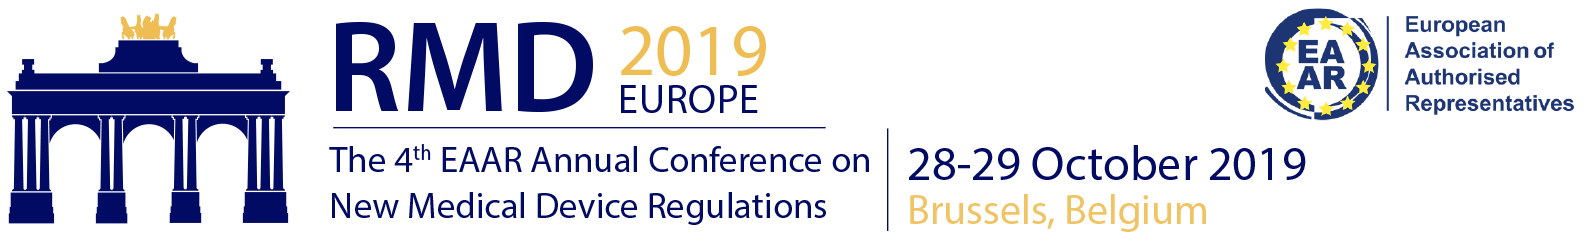 The 3rd European Symposium on the New Agreed Regulations on Medical Devices (RMD2018)